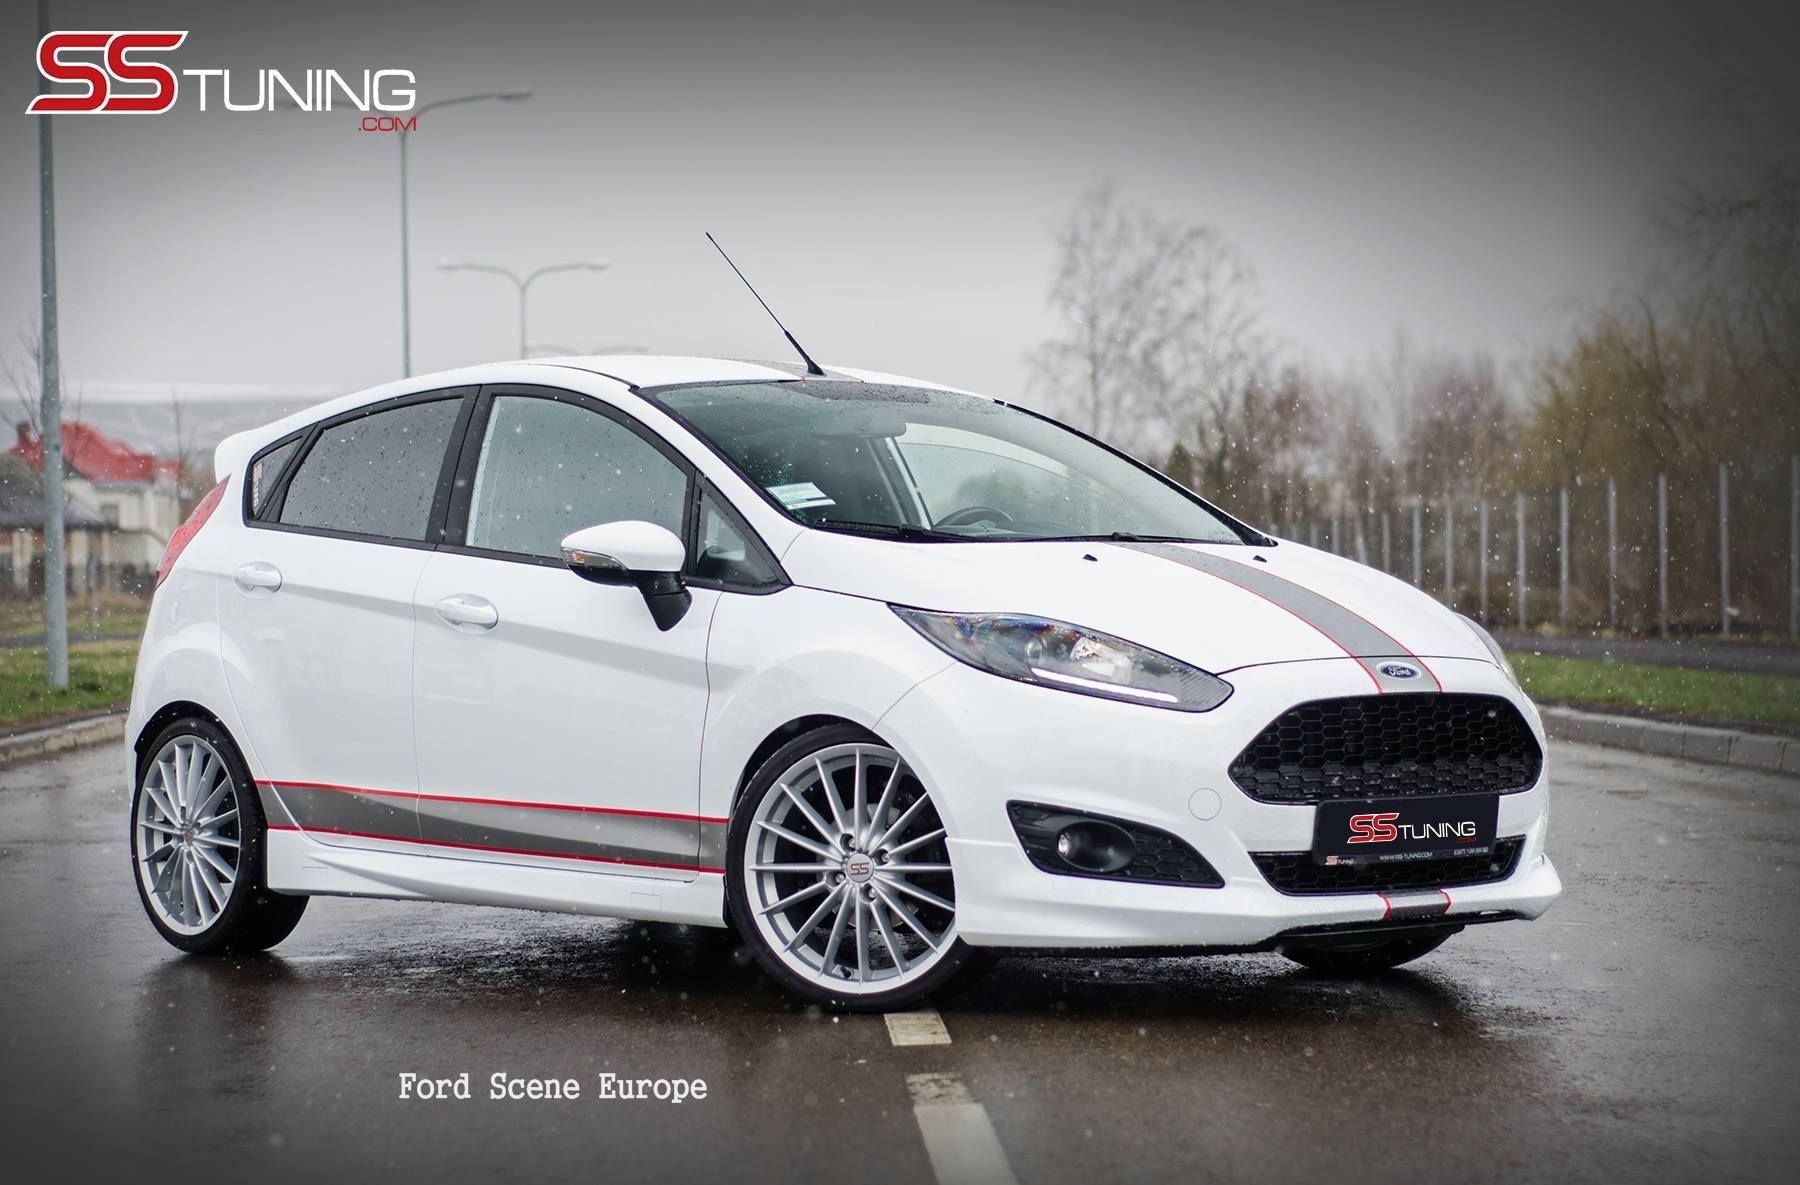 All Black Ford Fiesta Ford Fiesta Ss Tuning White Red And Black All Ford